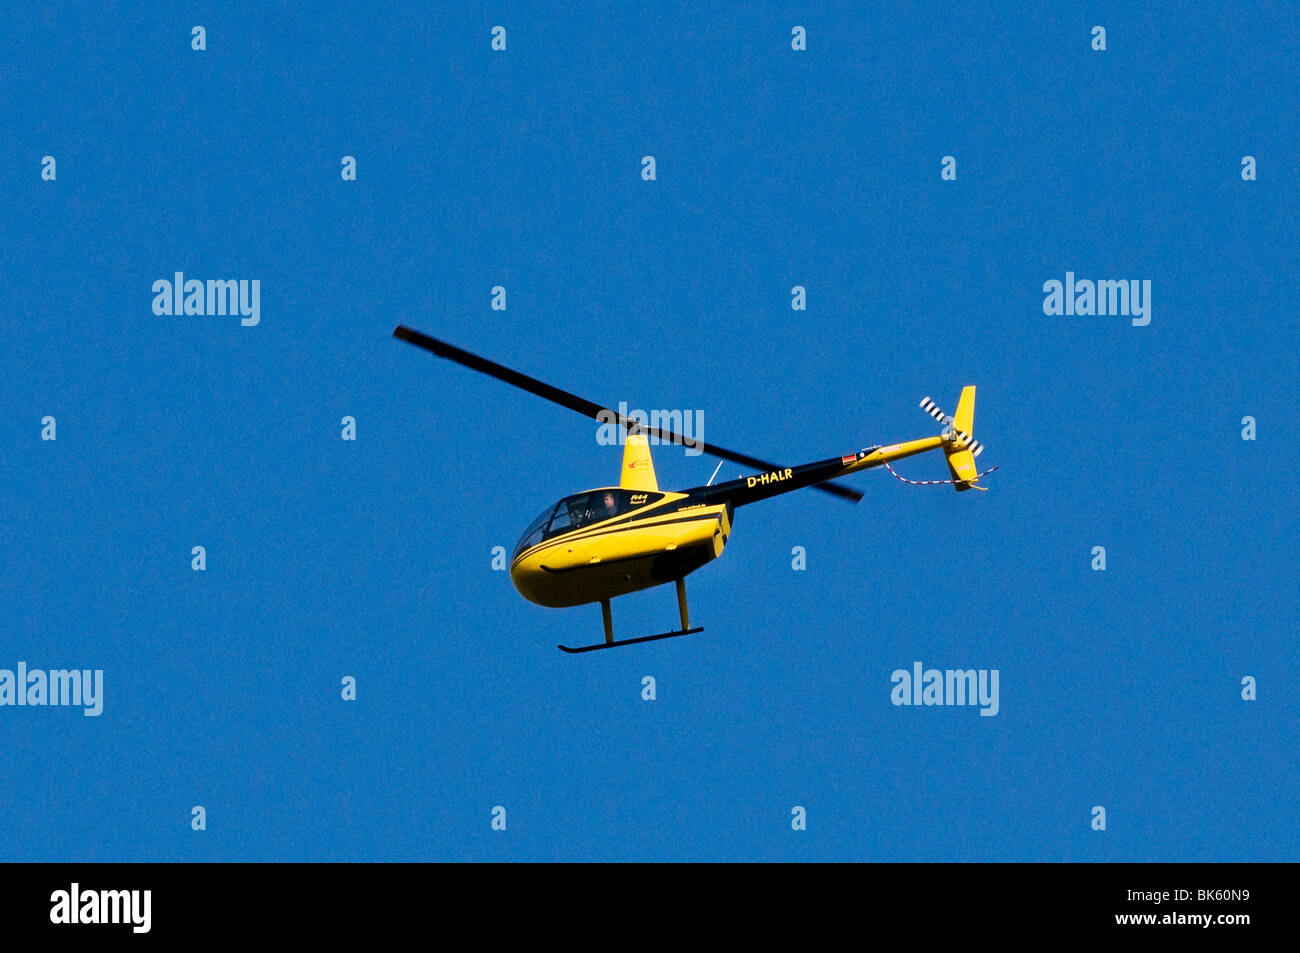 Black and yellow helicopter, Air Lloyd Robinson R44 Raven II, flying against a blue sky Stock Photo